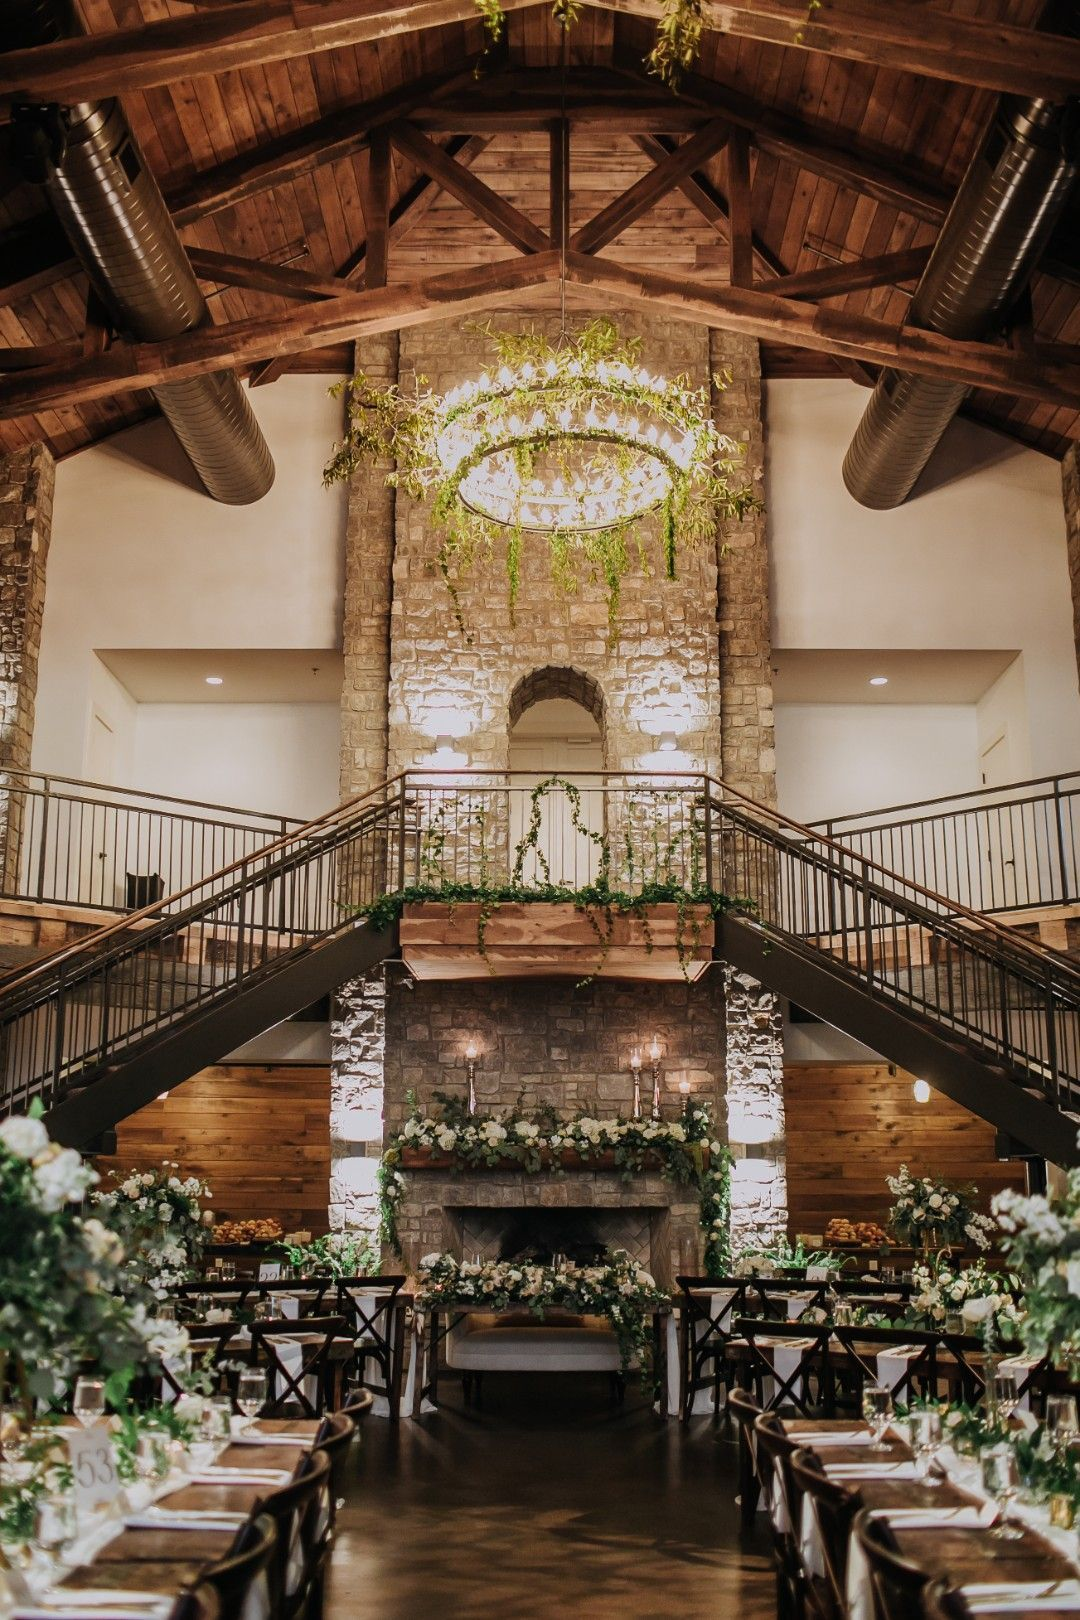 Southern Love Graystone Quarry Nashville Wedding Event Venue Southern Events Party Rental Company Franklin Nashville Middle Tennessee Tennessee Wedding Venues Wedding Event Venues Nashville Wedding